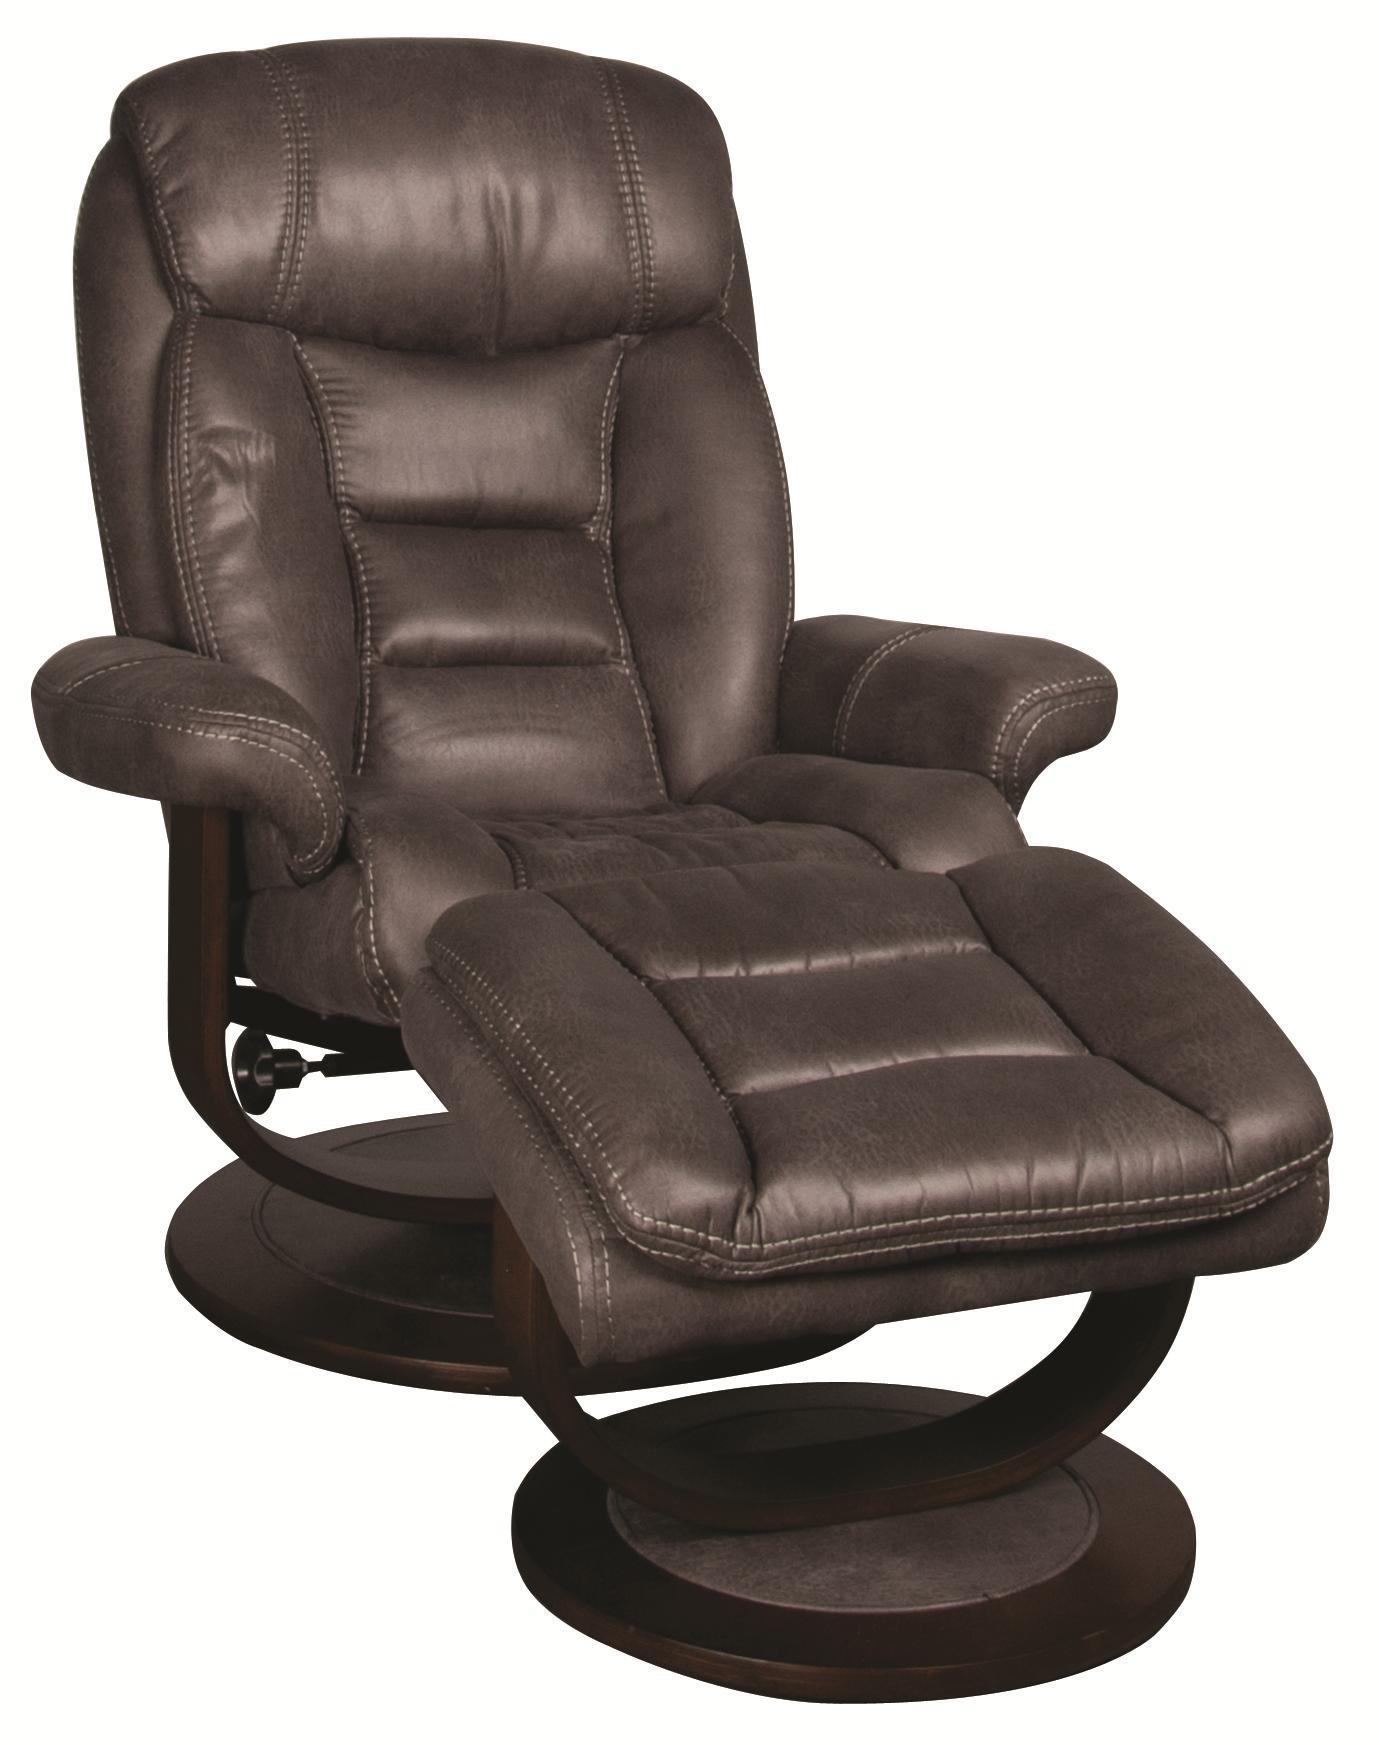 Morris Home Furnishings Manuel Manuel Swivel Recliner with Ottoman - Item Number: 198821542